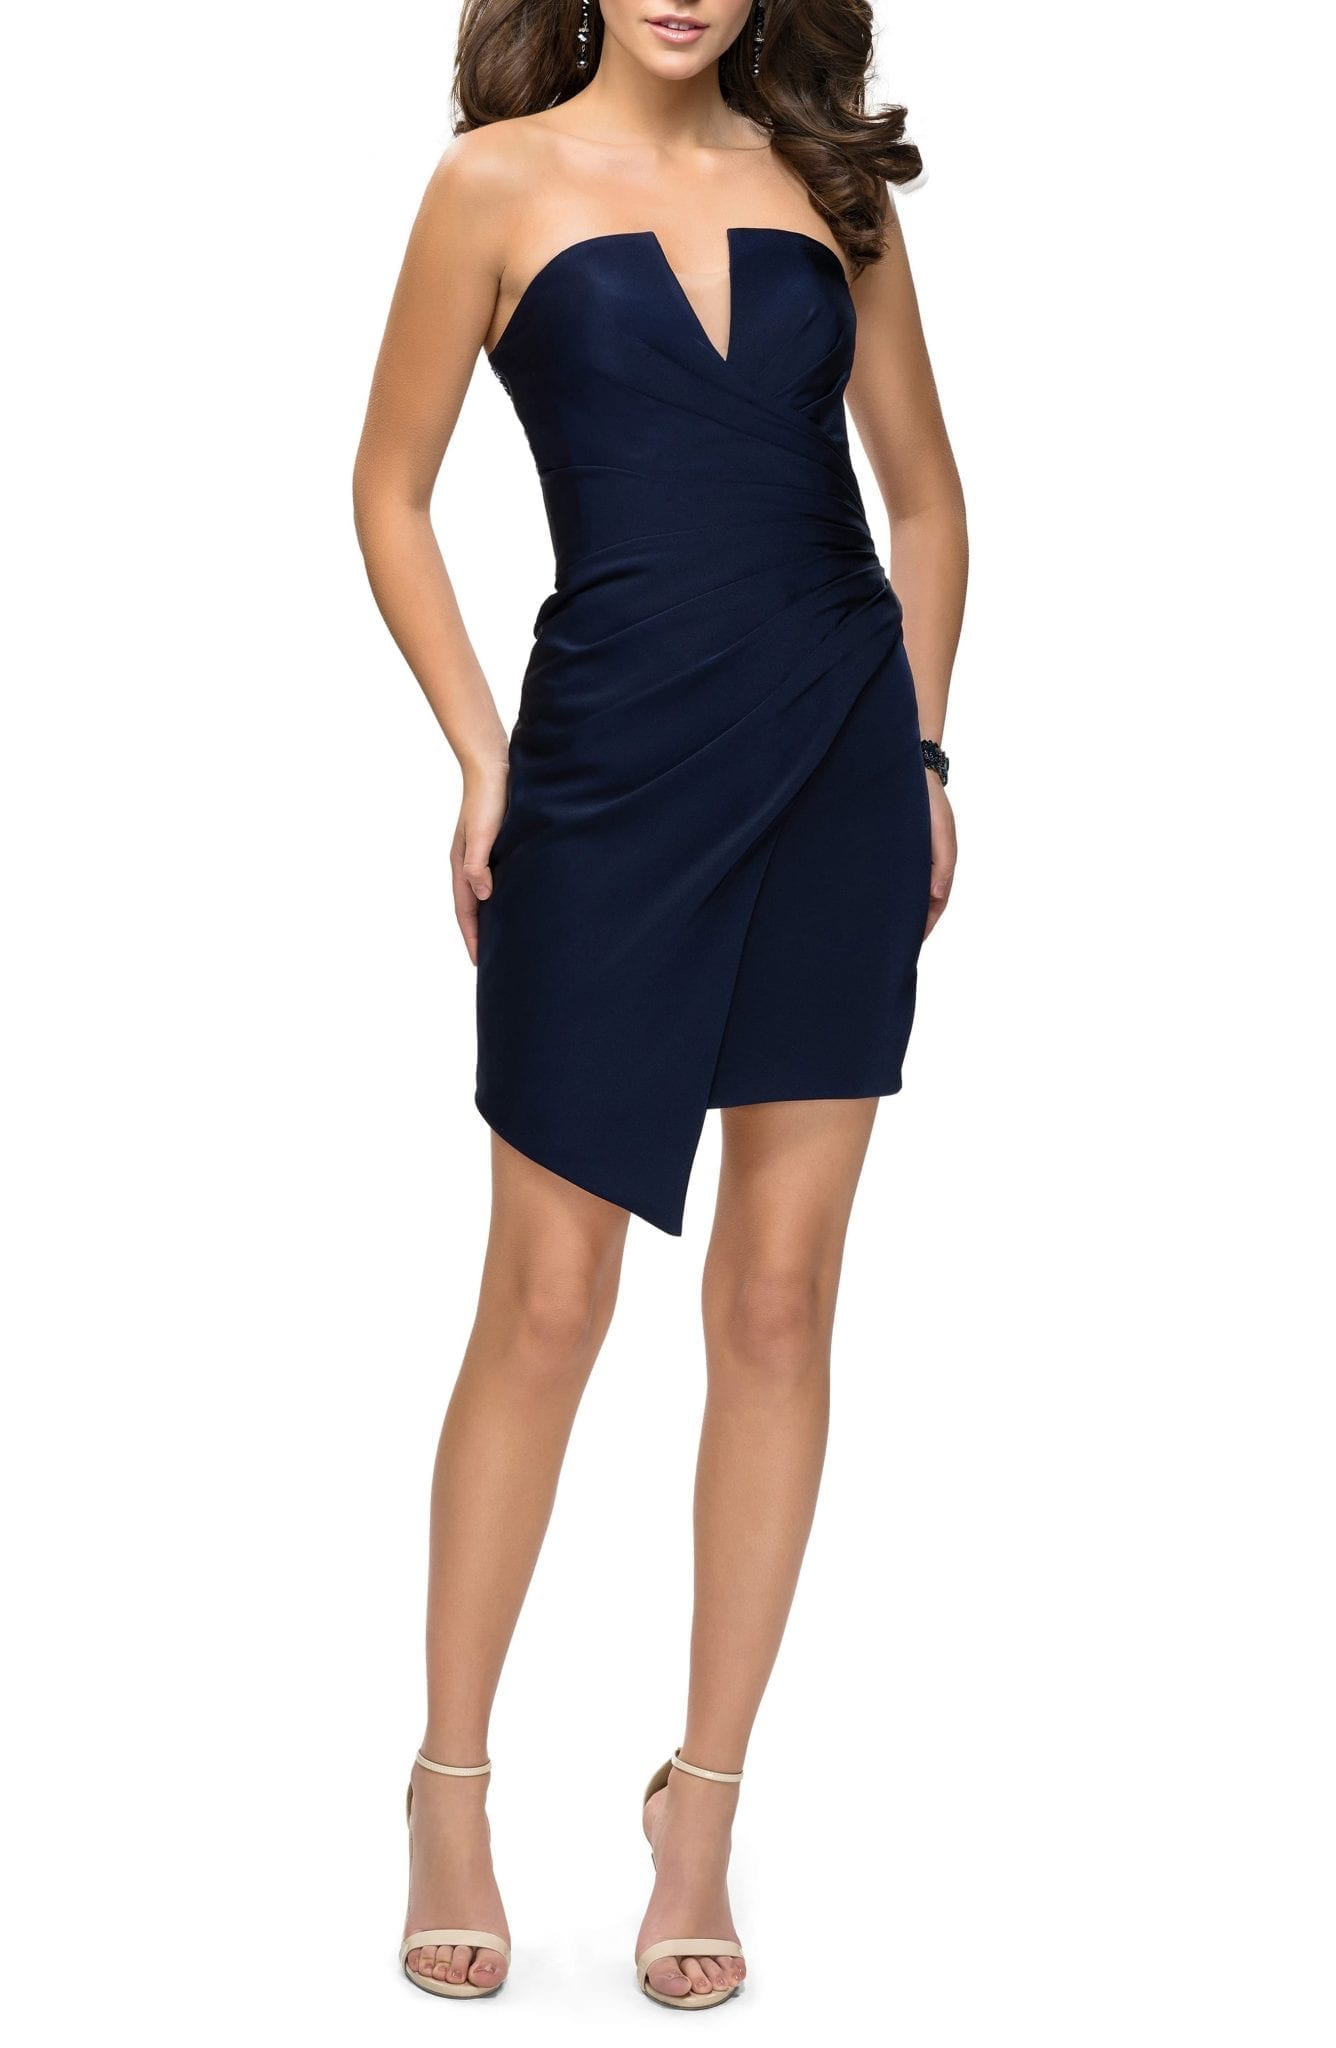 LA FEMME Strapless Asymmetrical Party Navy Dress